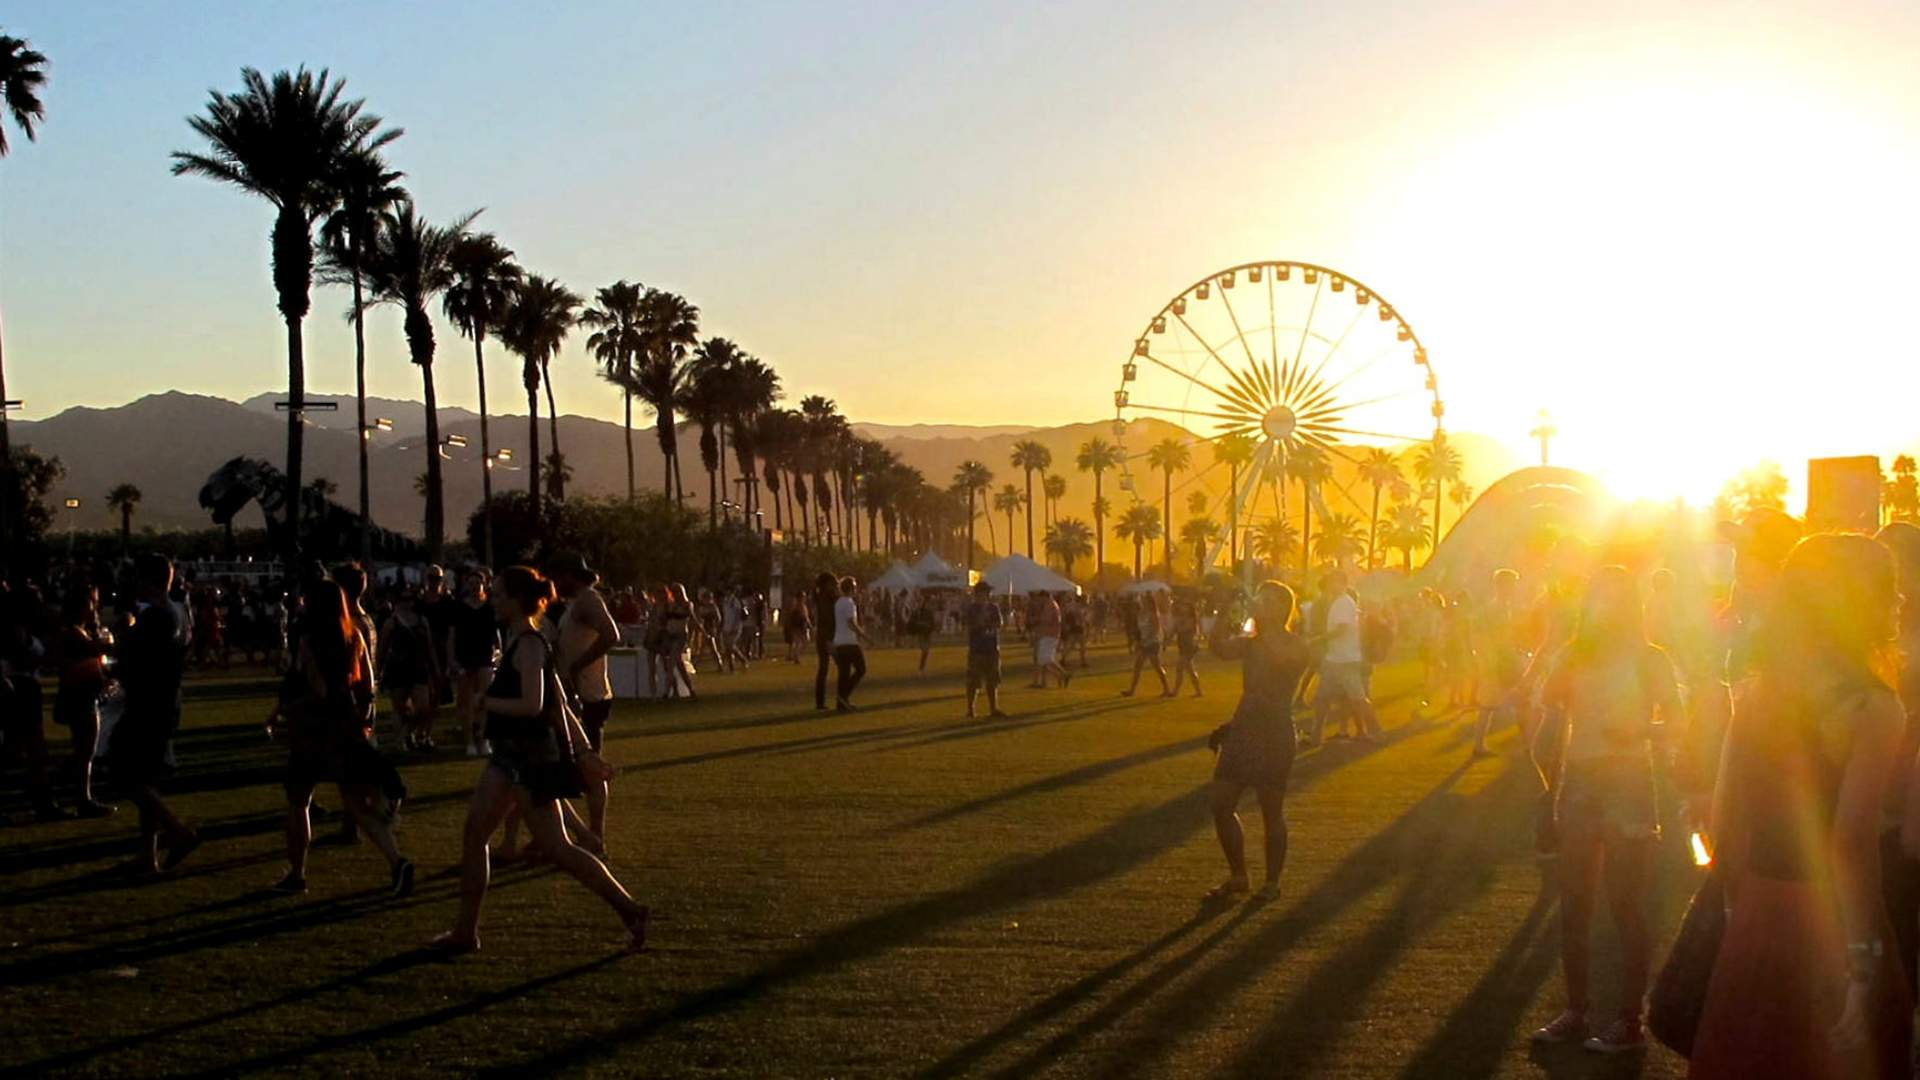 Coachella 2020 Has Been Postponed Due to Coronavirus